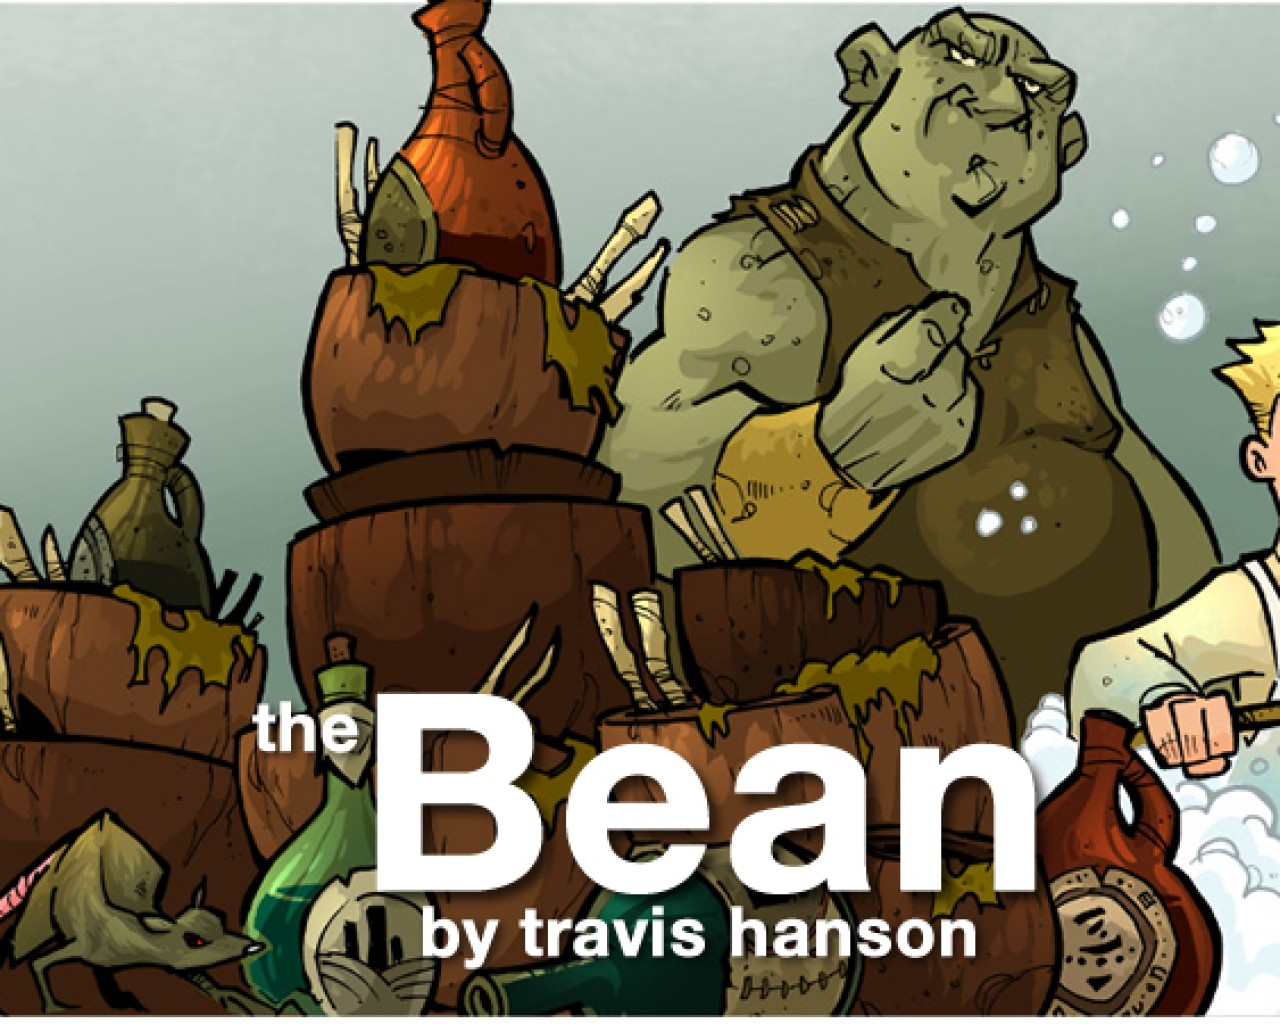 Poster Image for the bean